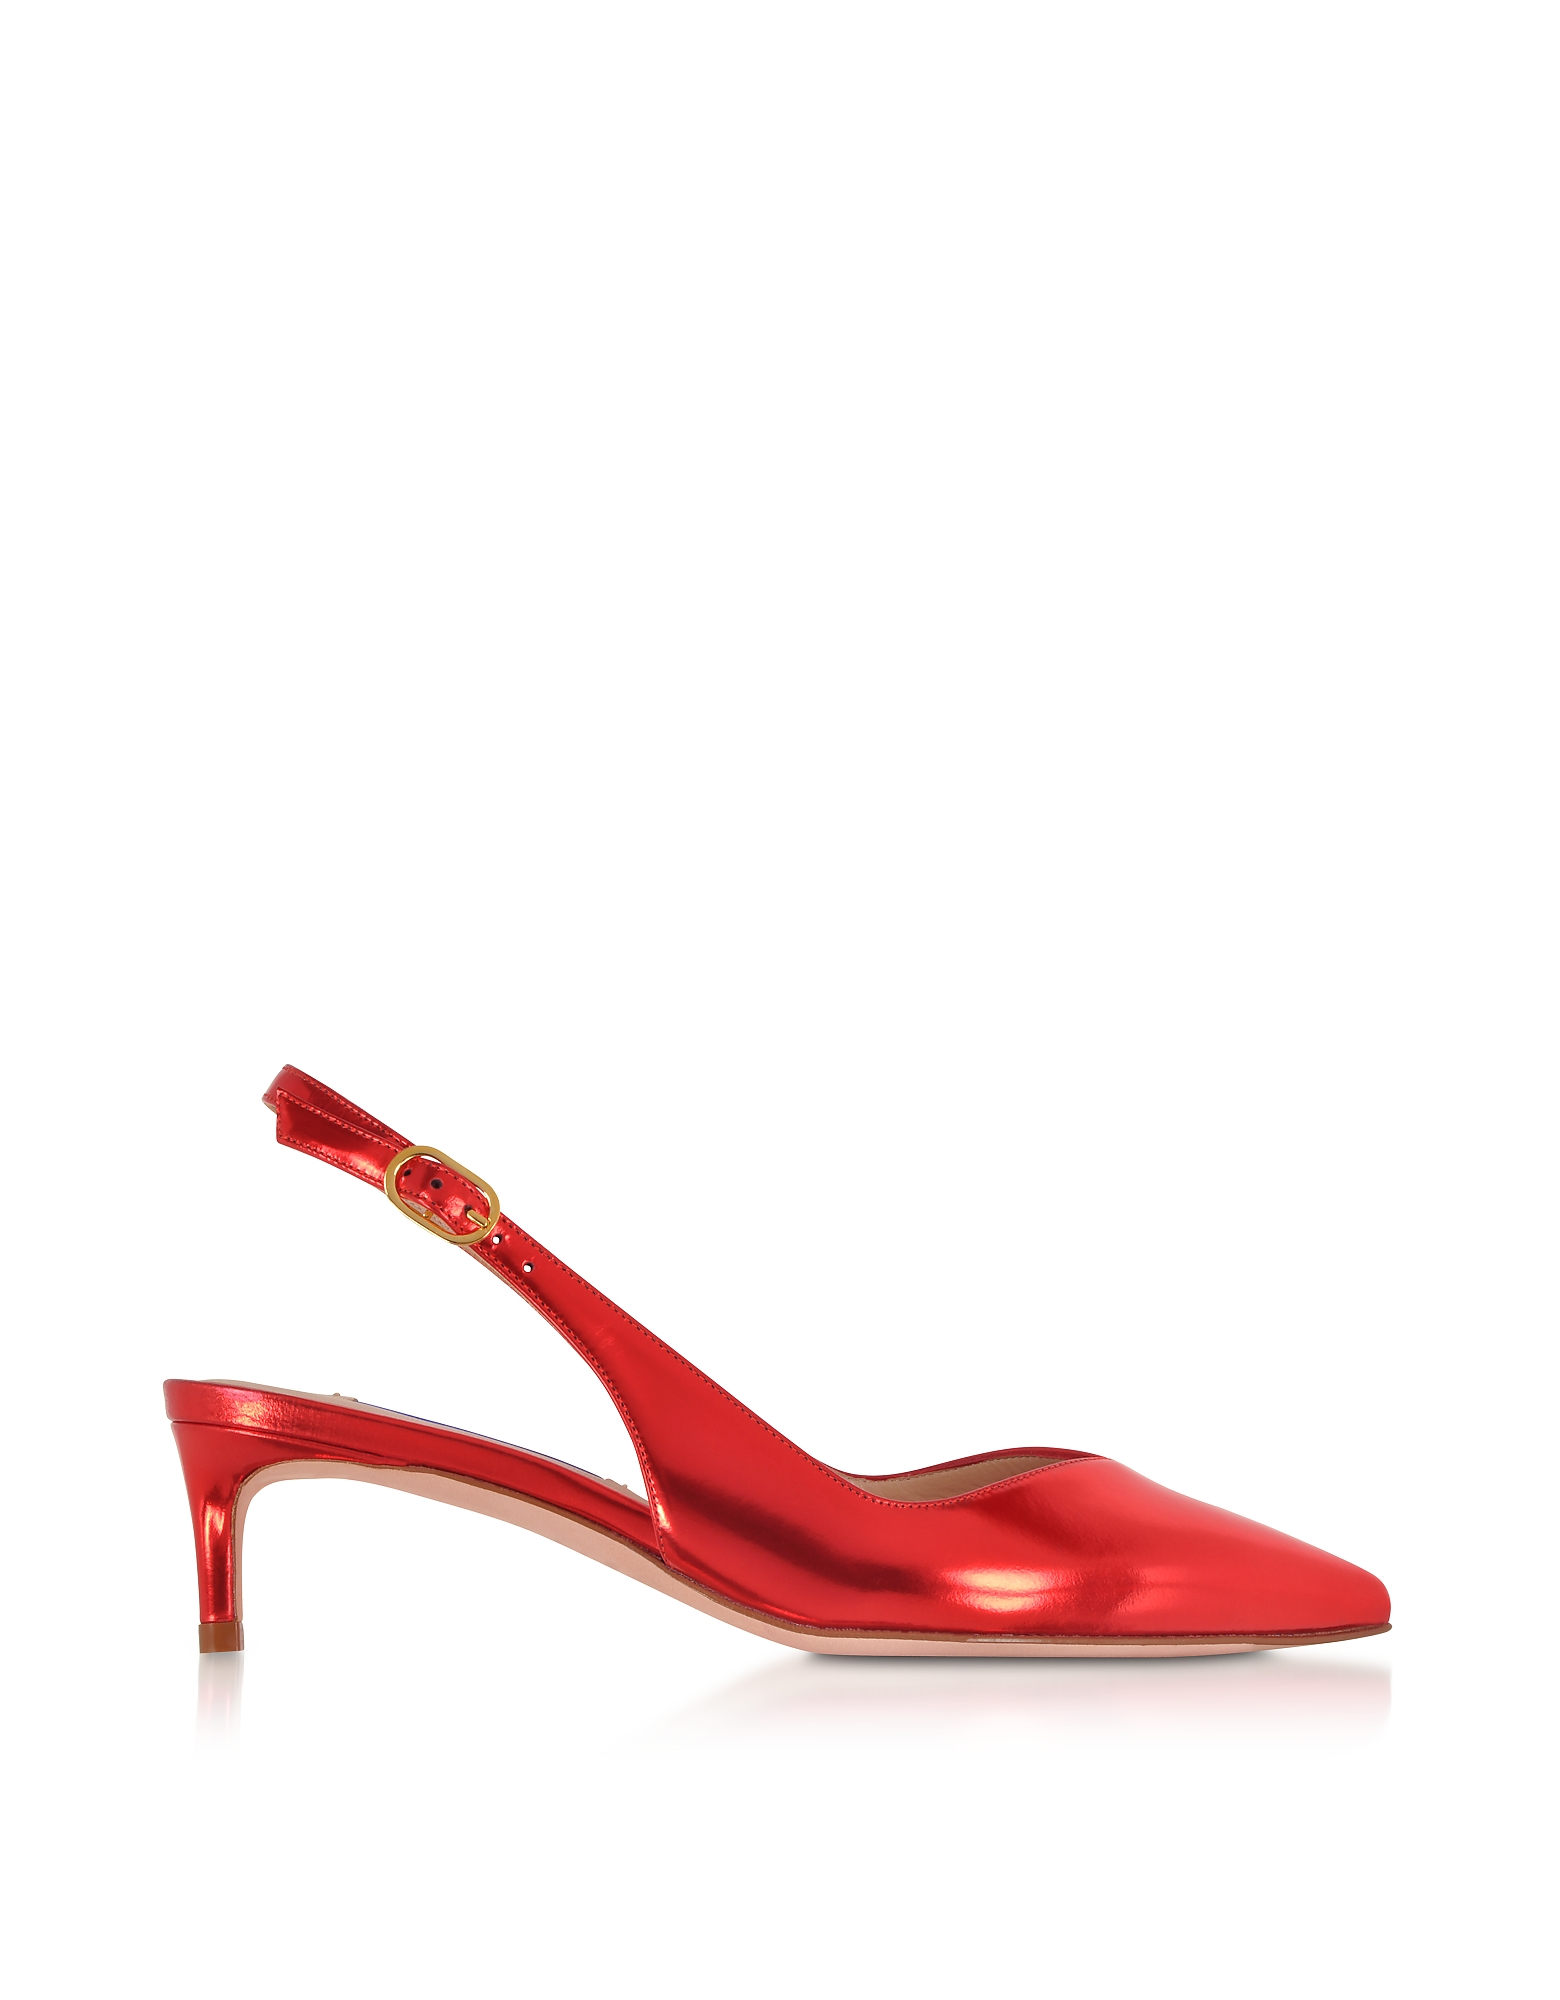 Edith Metallic Red Leather Slingback Shoes